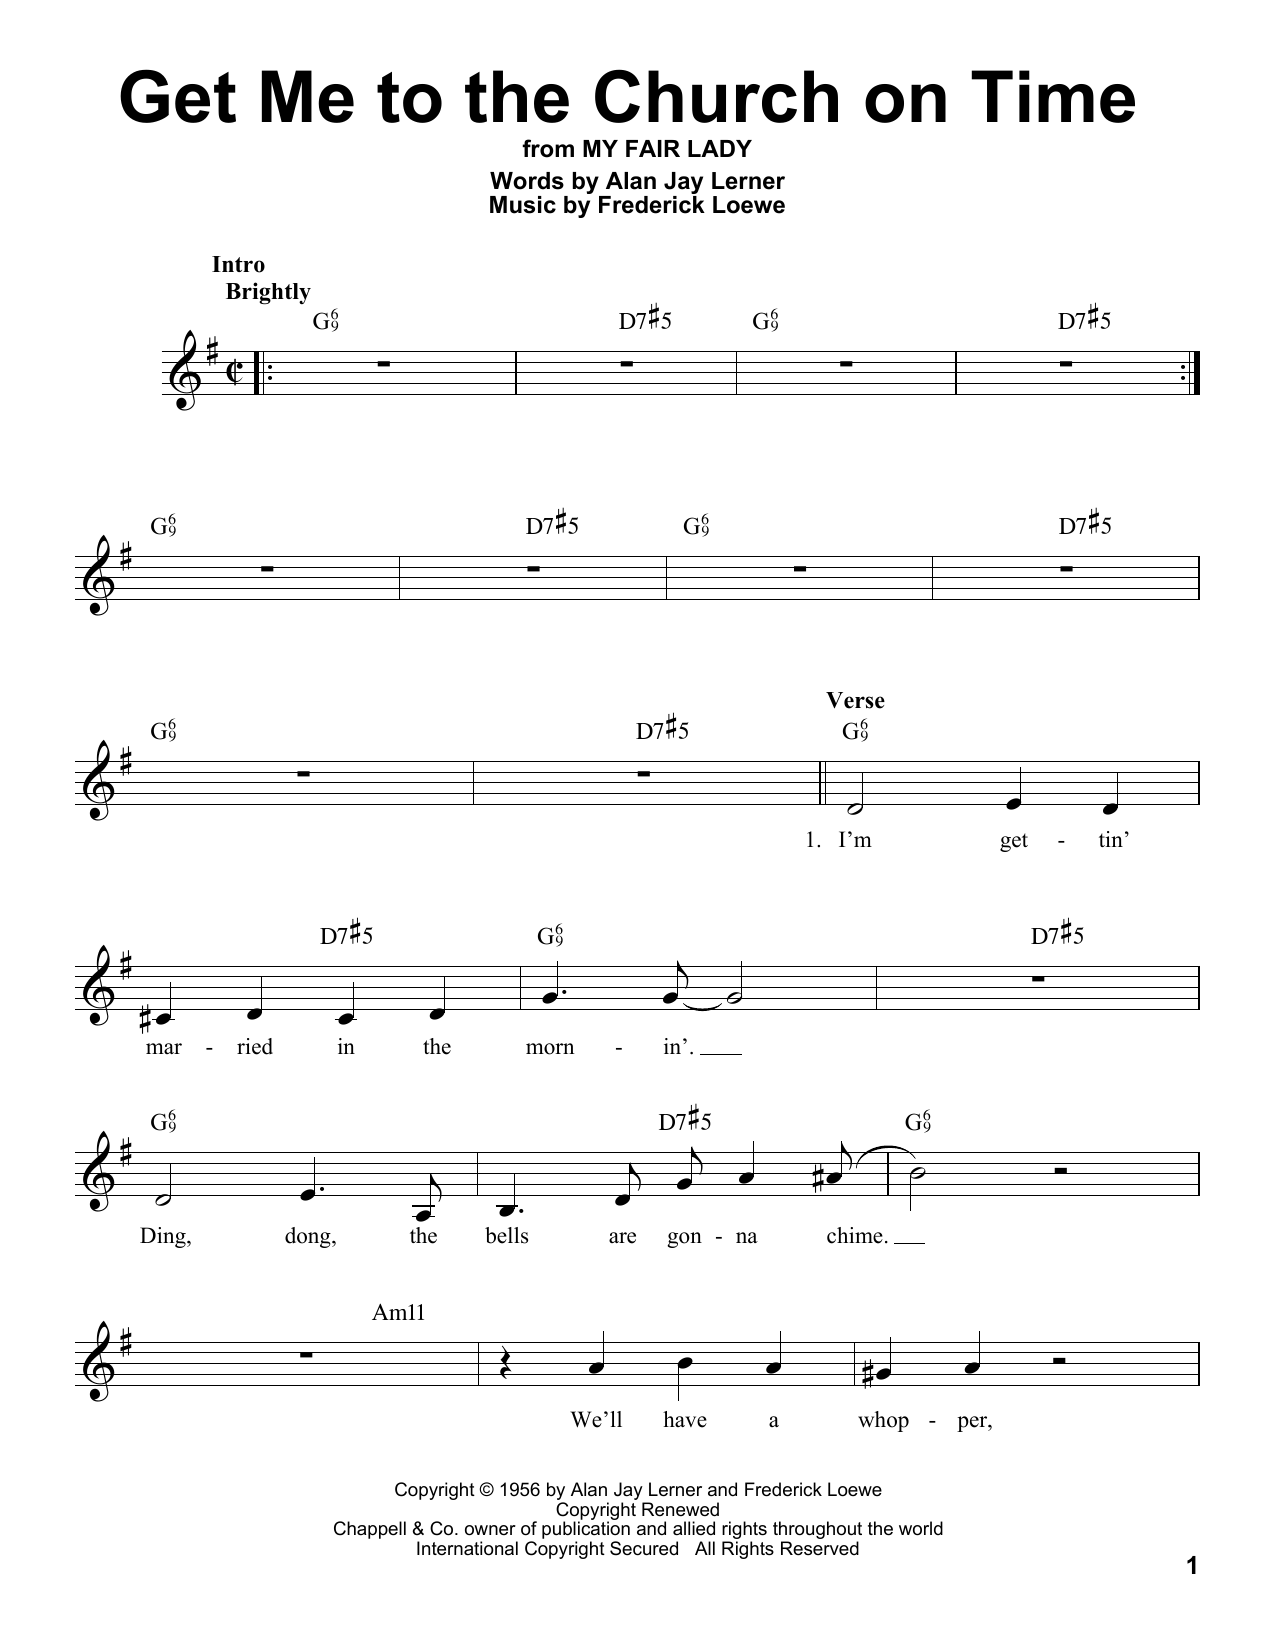 Get Me To The Church On Time Sheet Music